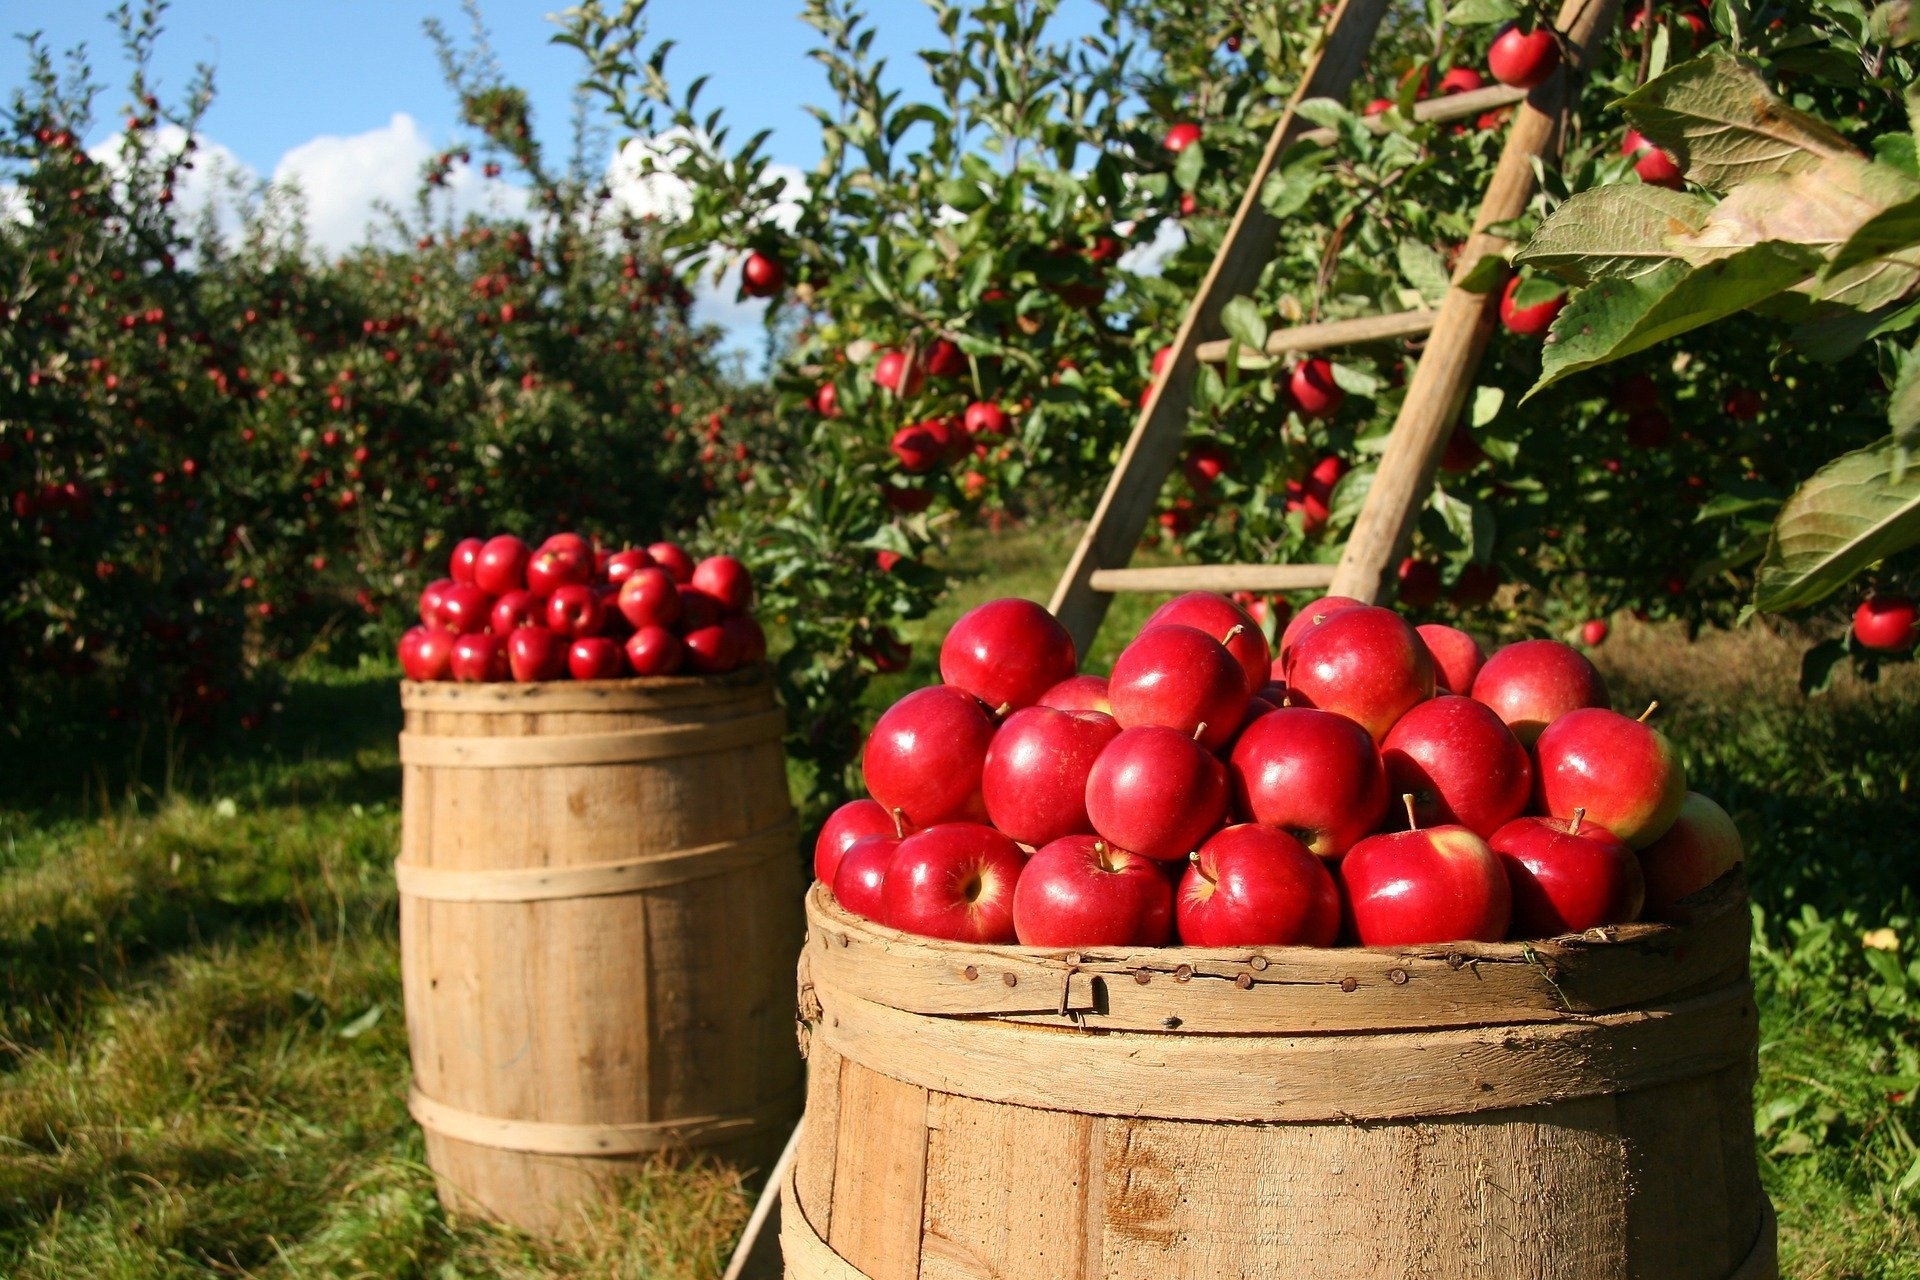 Apple picking in Northern Virginia. Photo of apples on a barrel after being picked in the orchard.